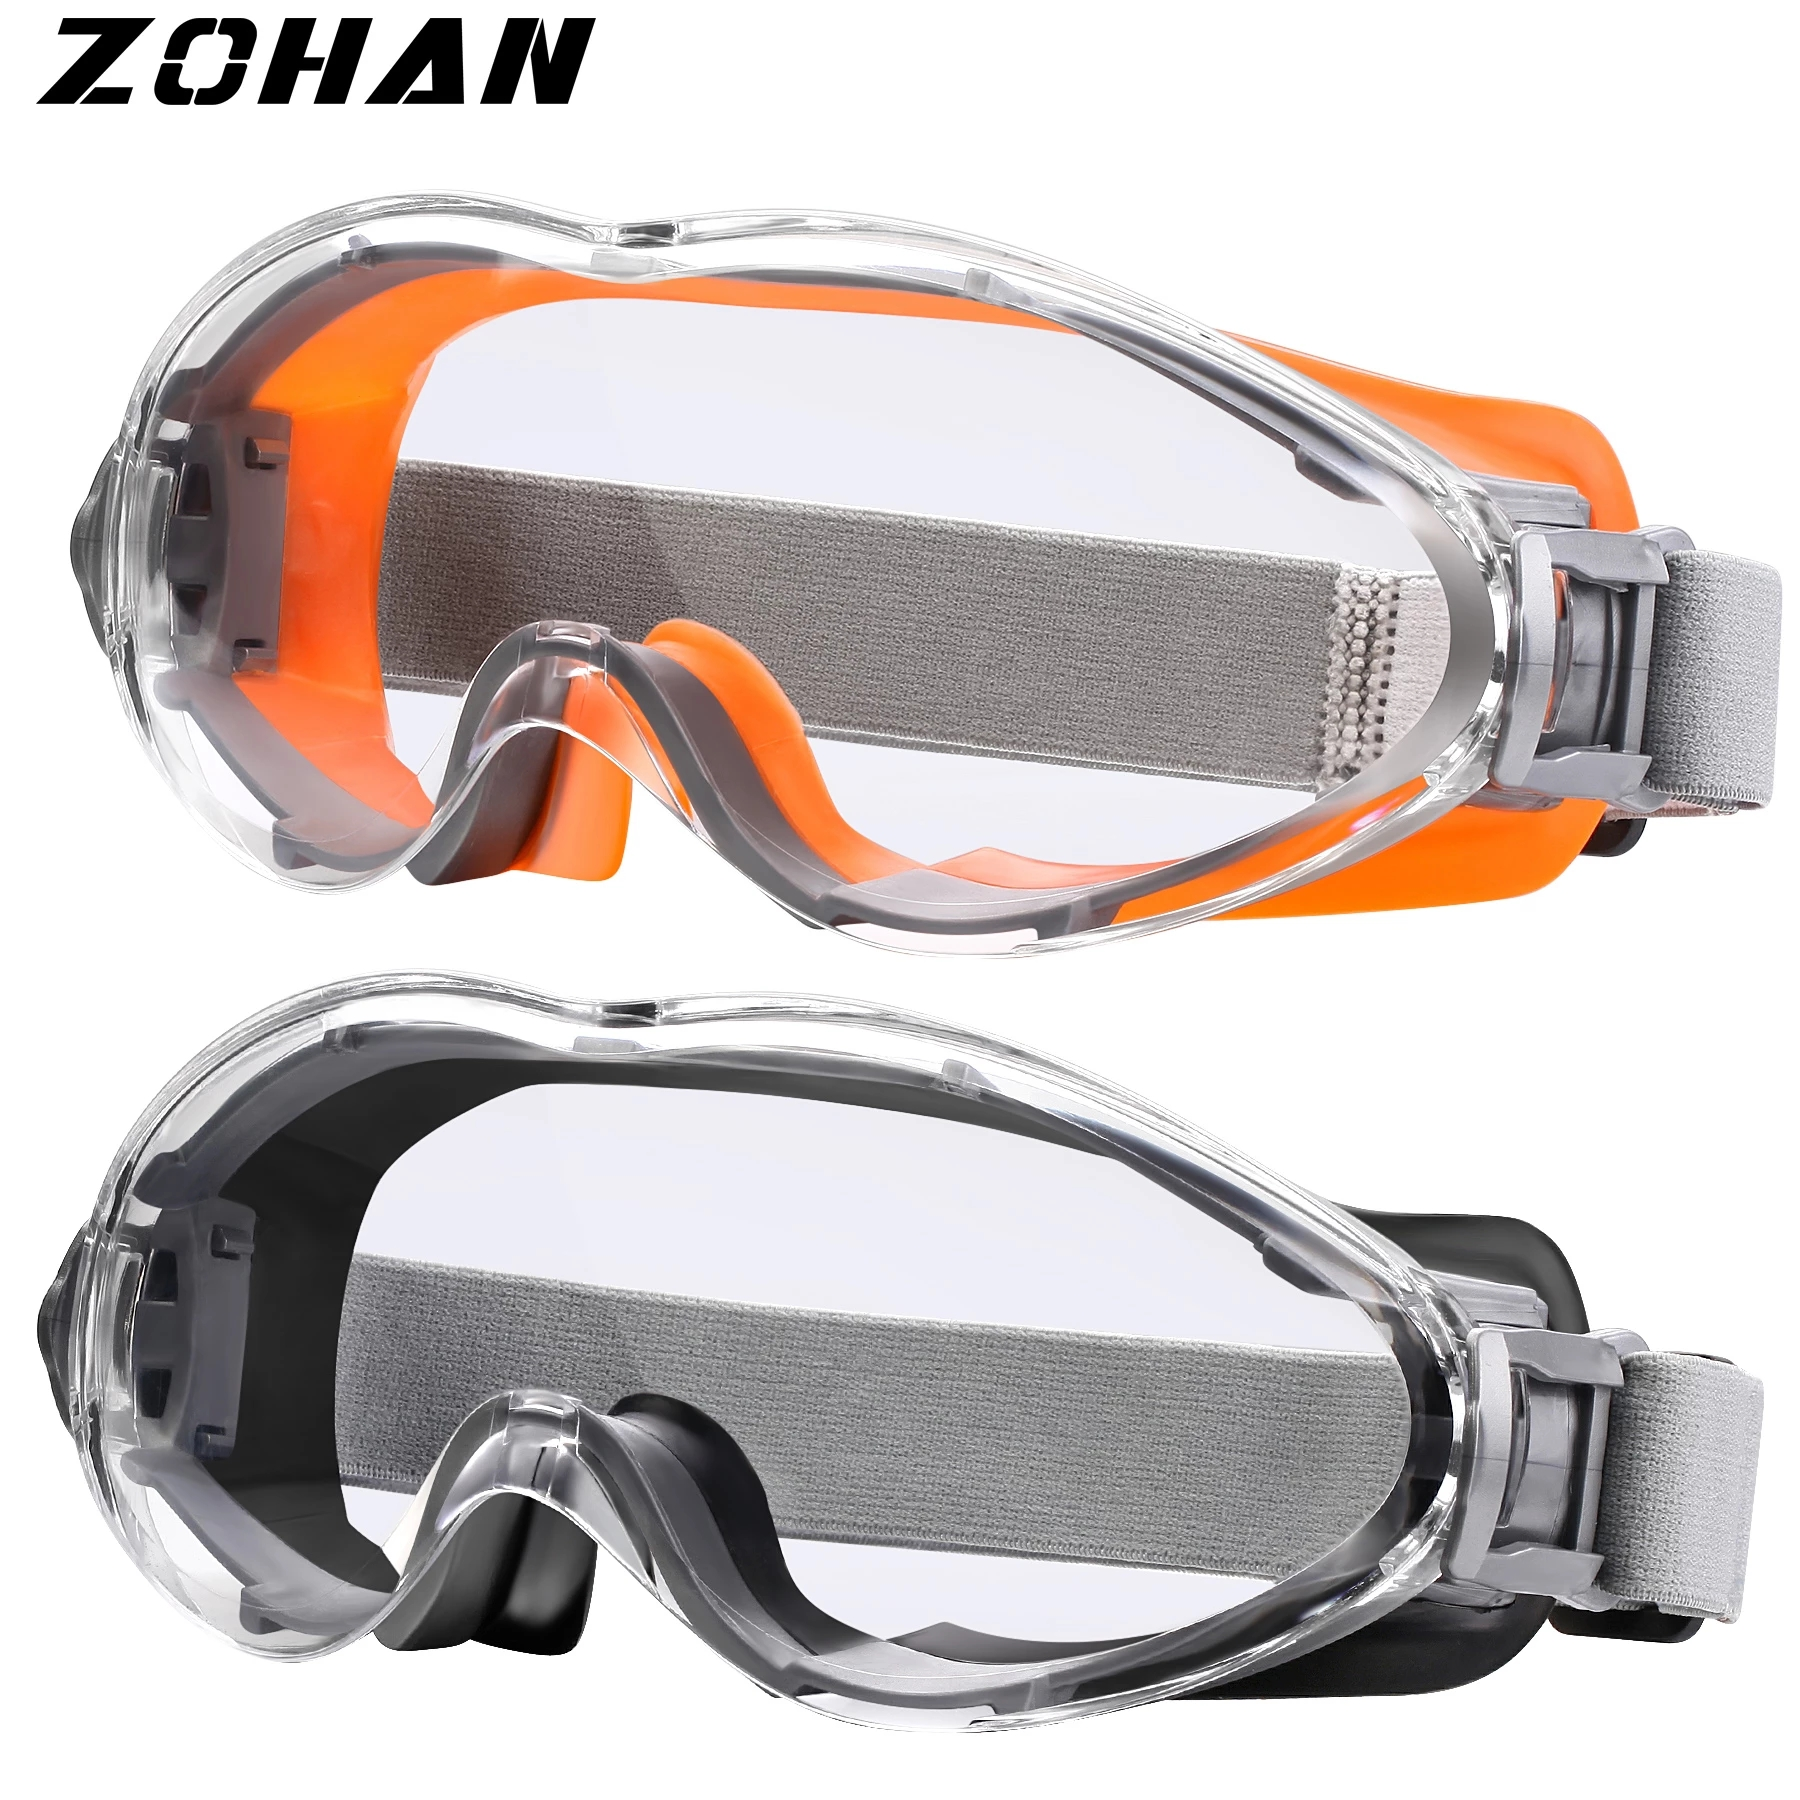 ZOHAN 2PCS Safety Glasses Protective Goggles Anti-UV Waterproof Tactical Sport Protection Glasses Eyewear Eye Protection Riding